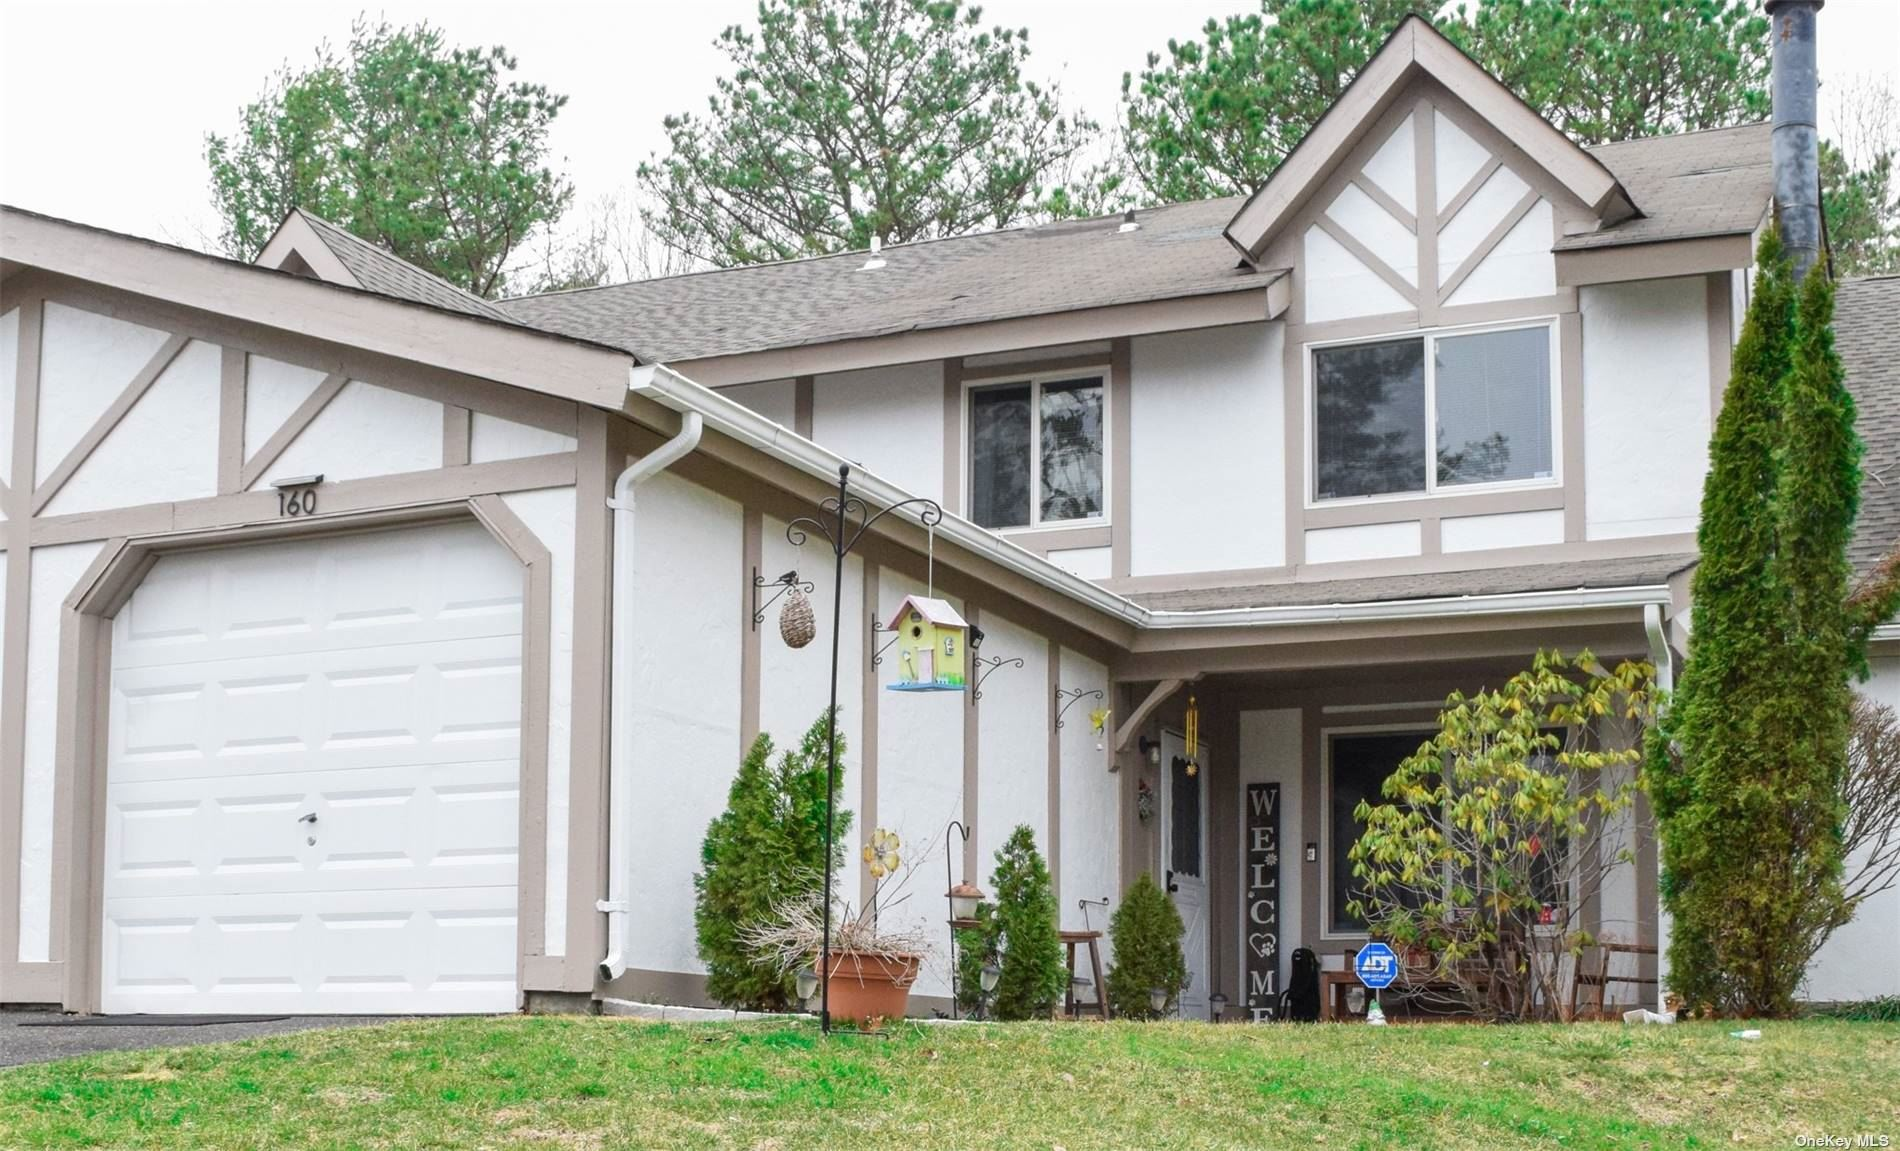 160 Eagle Hill Court, Middle Island, NY 11953 - MLS#: 3299461